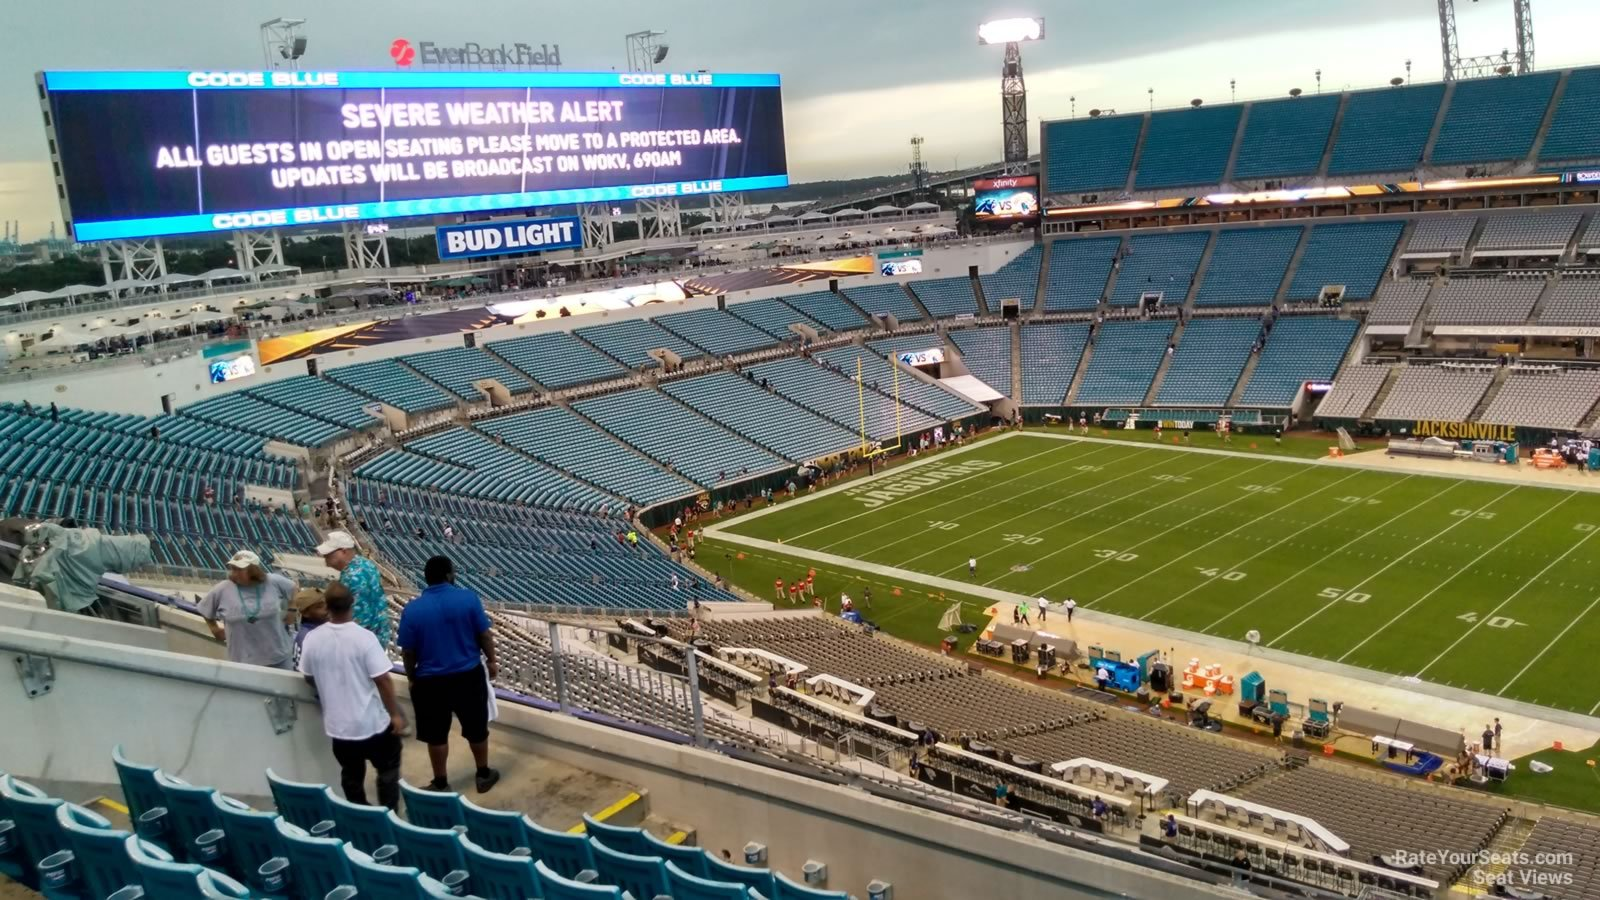 Section 408 seat view